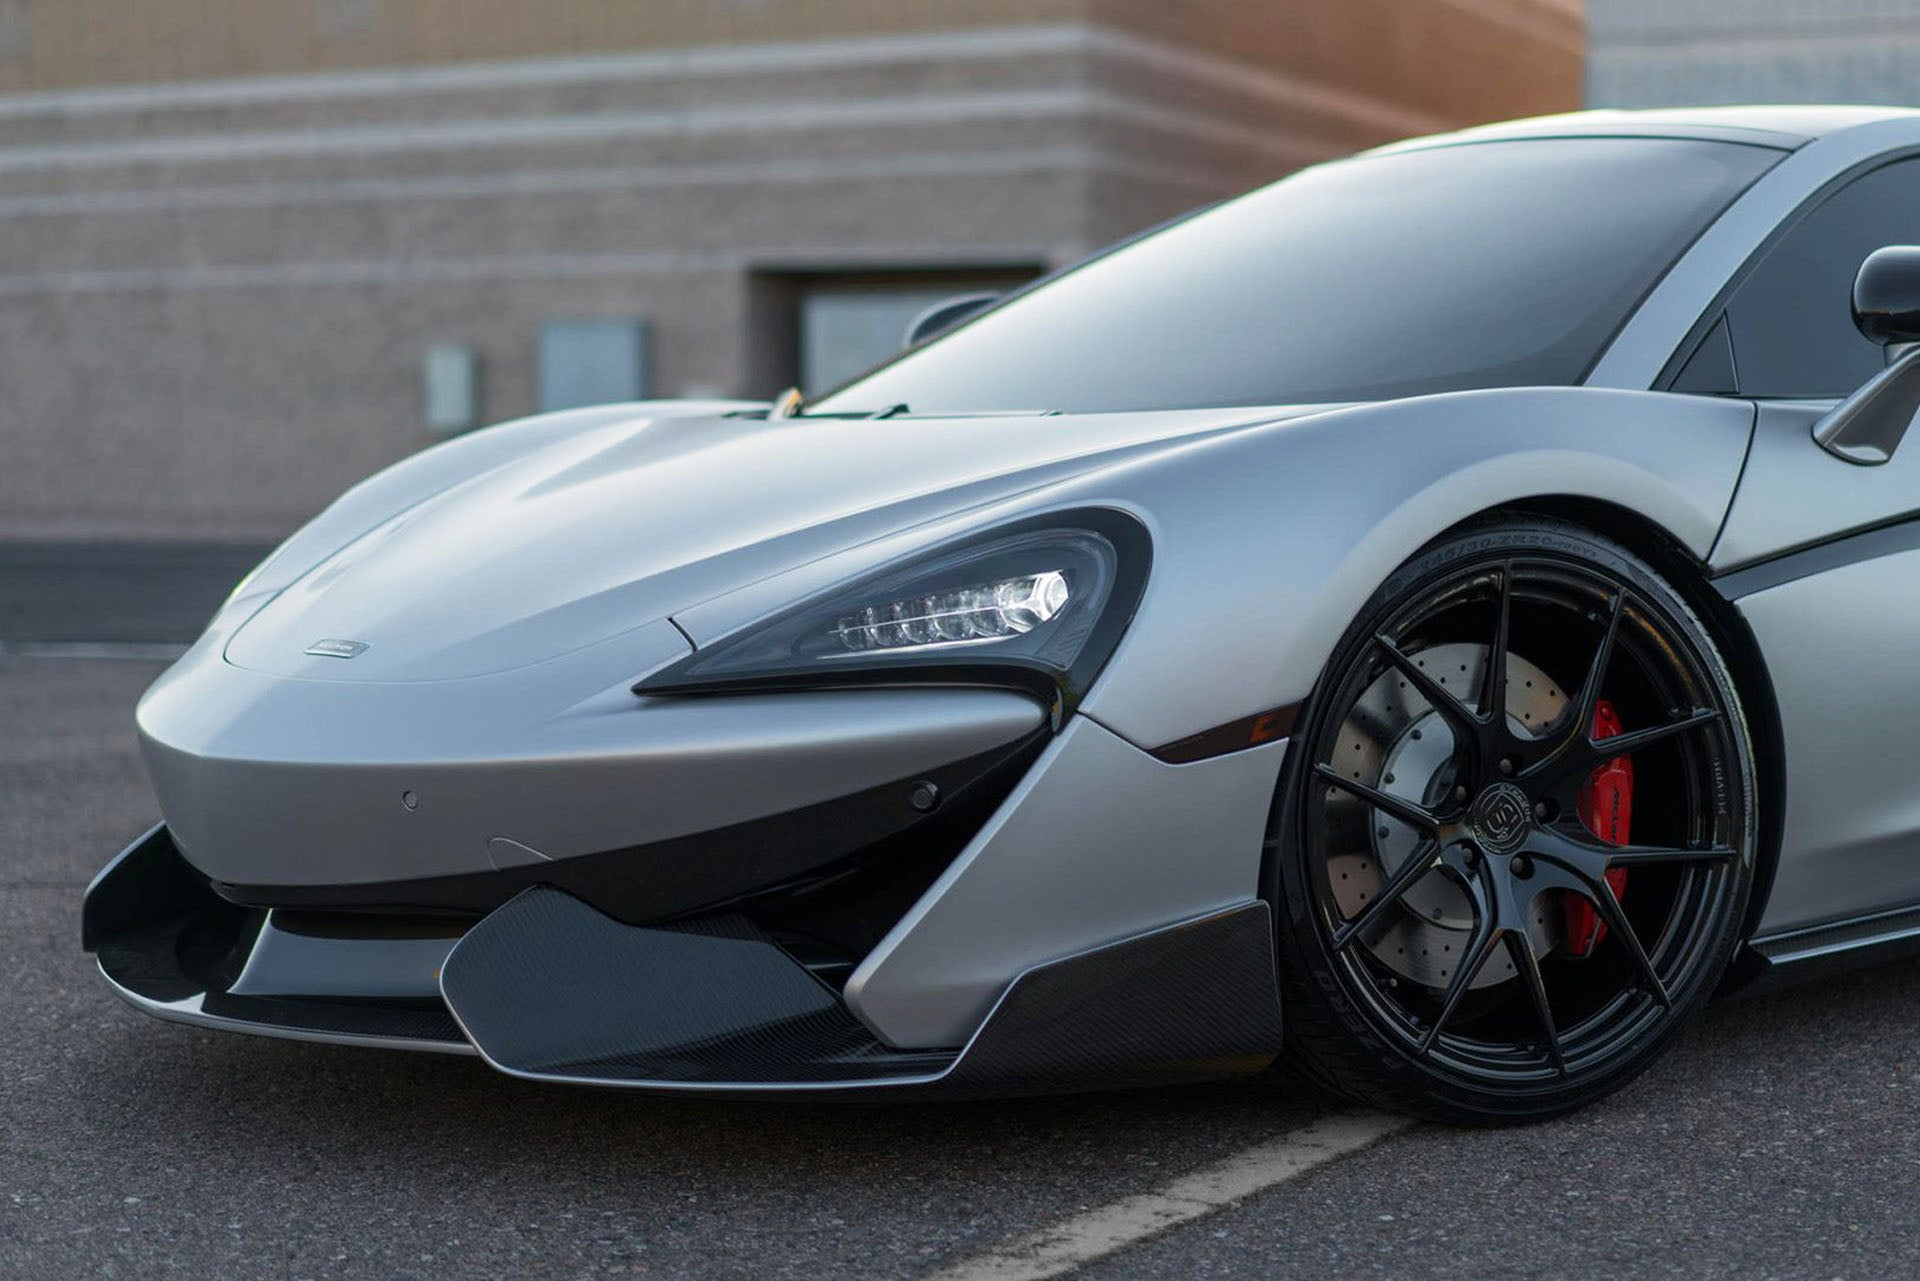 MCLAREN 570S 1016 INDUSTRIES - AERO KIT